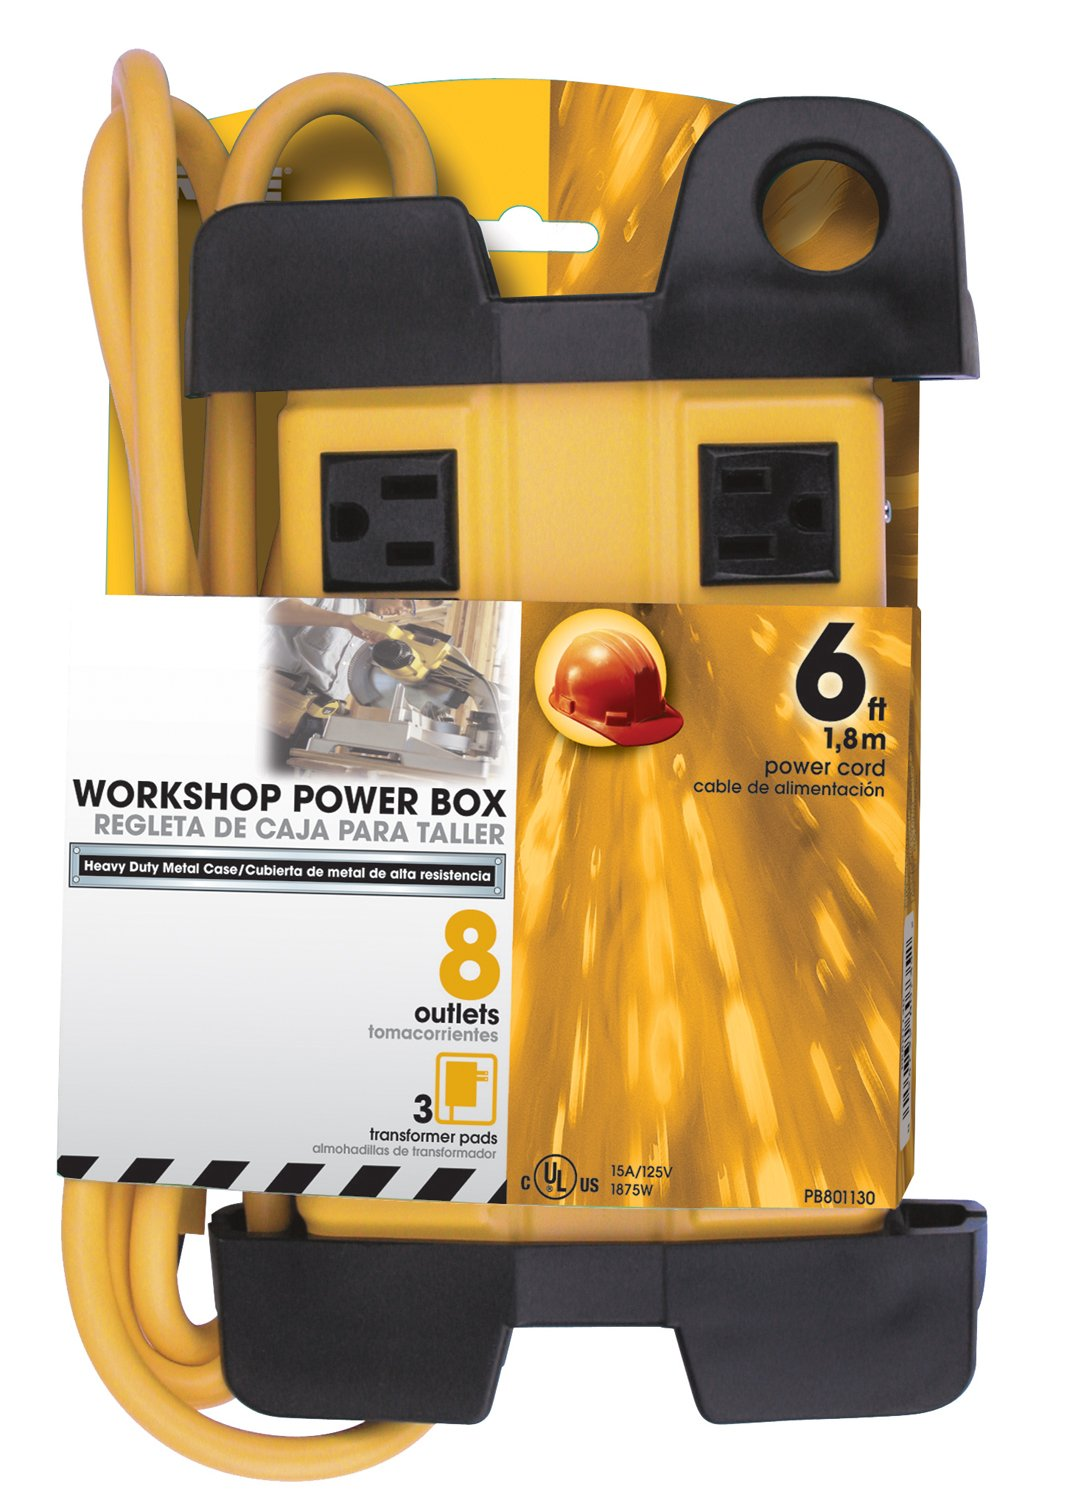 Prime Wire & Cable PB801130 8-Outlet 5+3 Metal Shop Box with 6-Foot Cord and Cord Wrap, Yellow Inc.